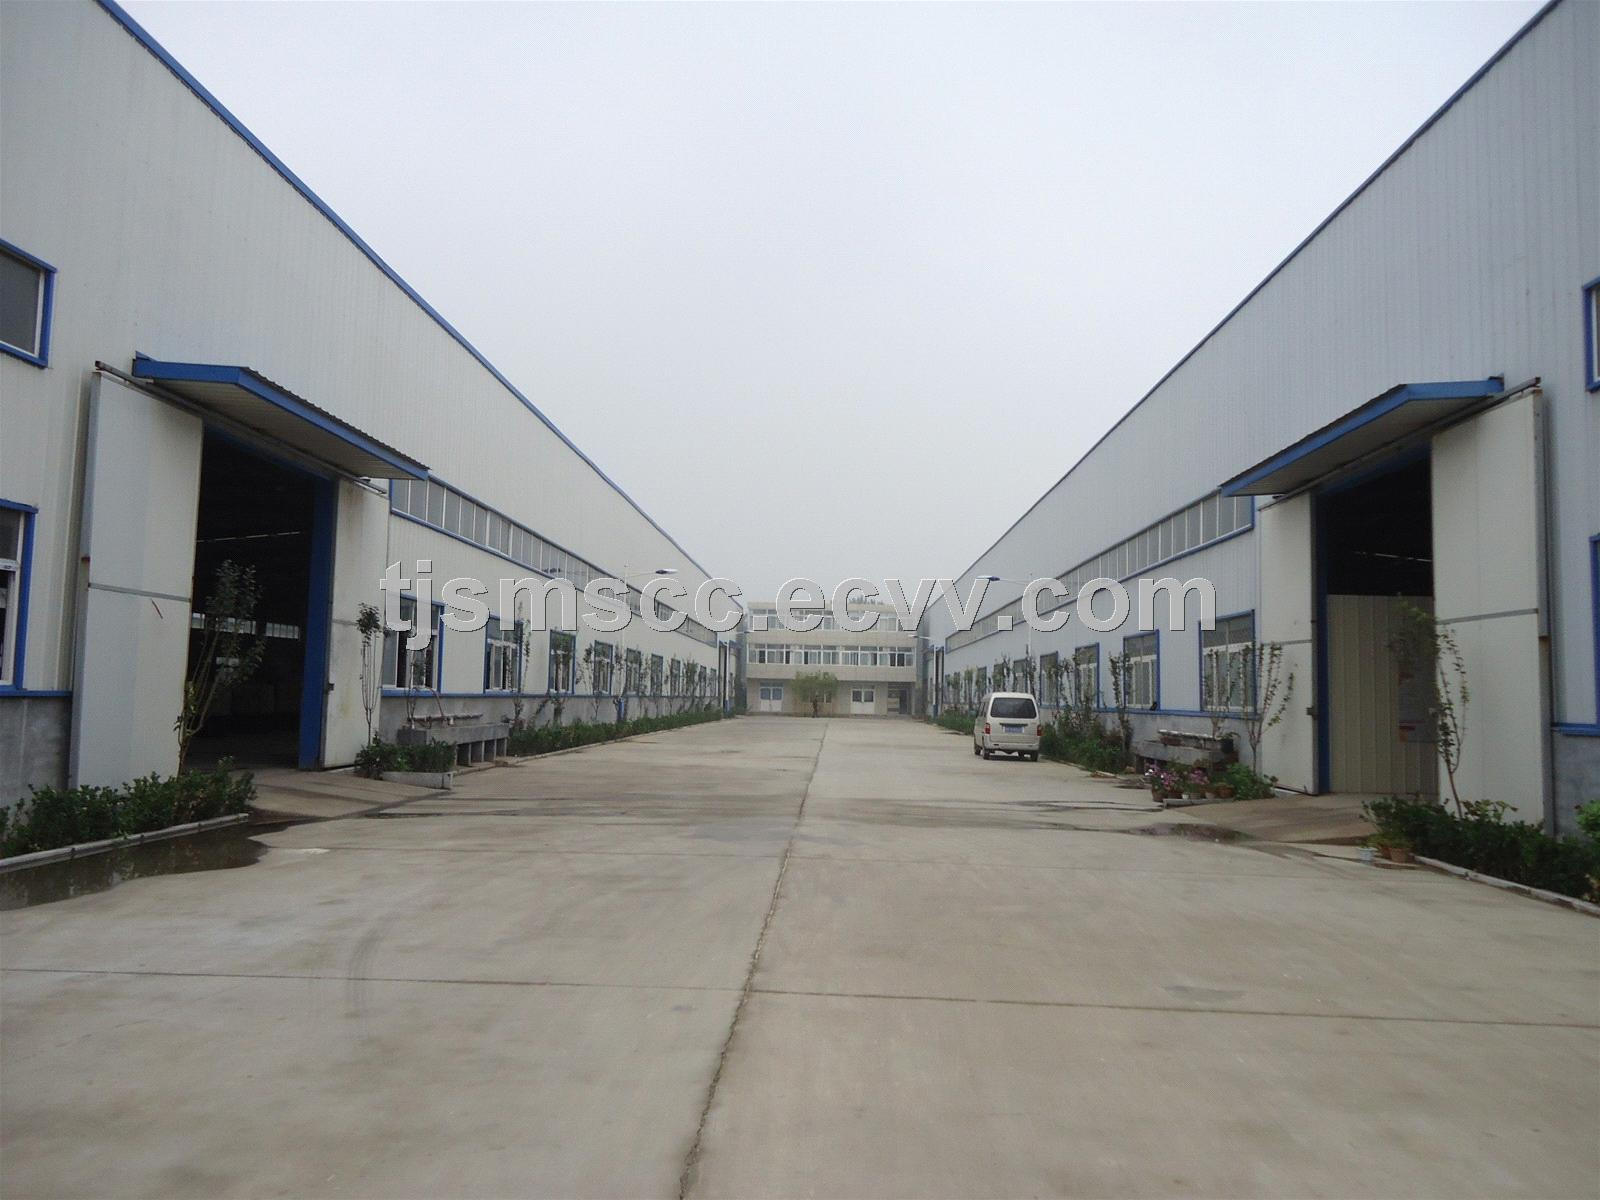 SMSCC(Tianjin) CNC Tool Co., Ltd.